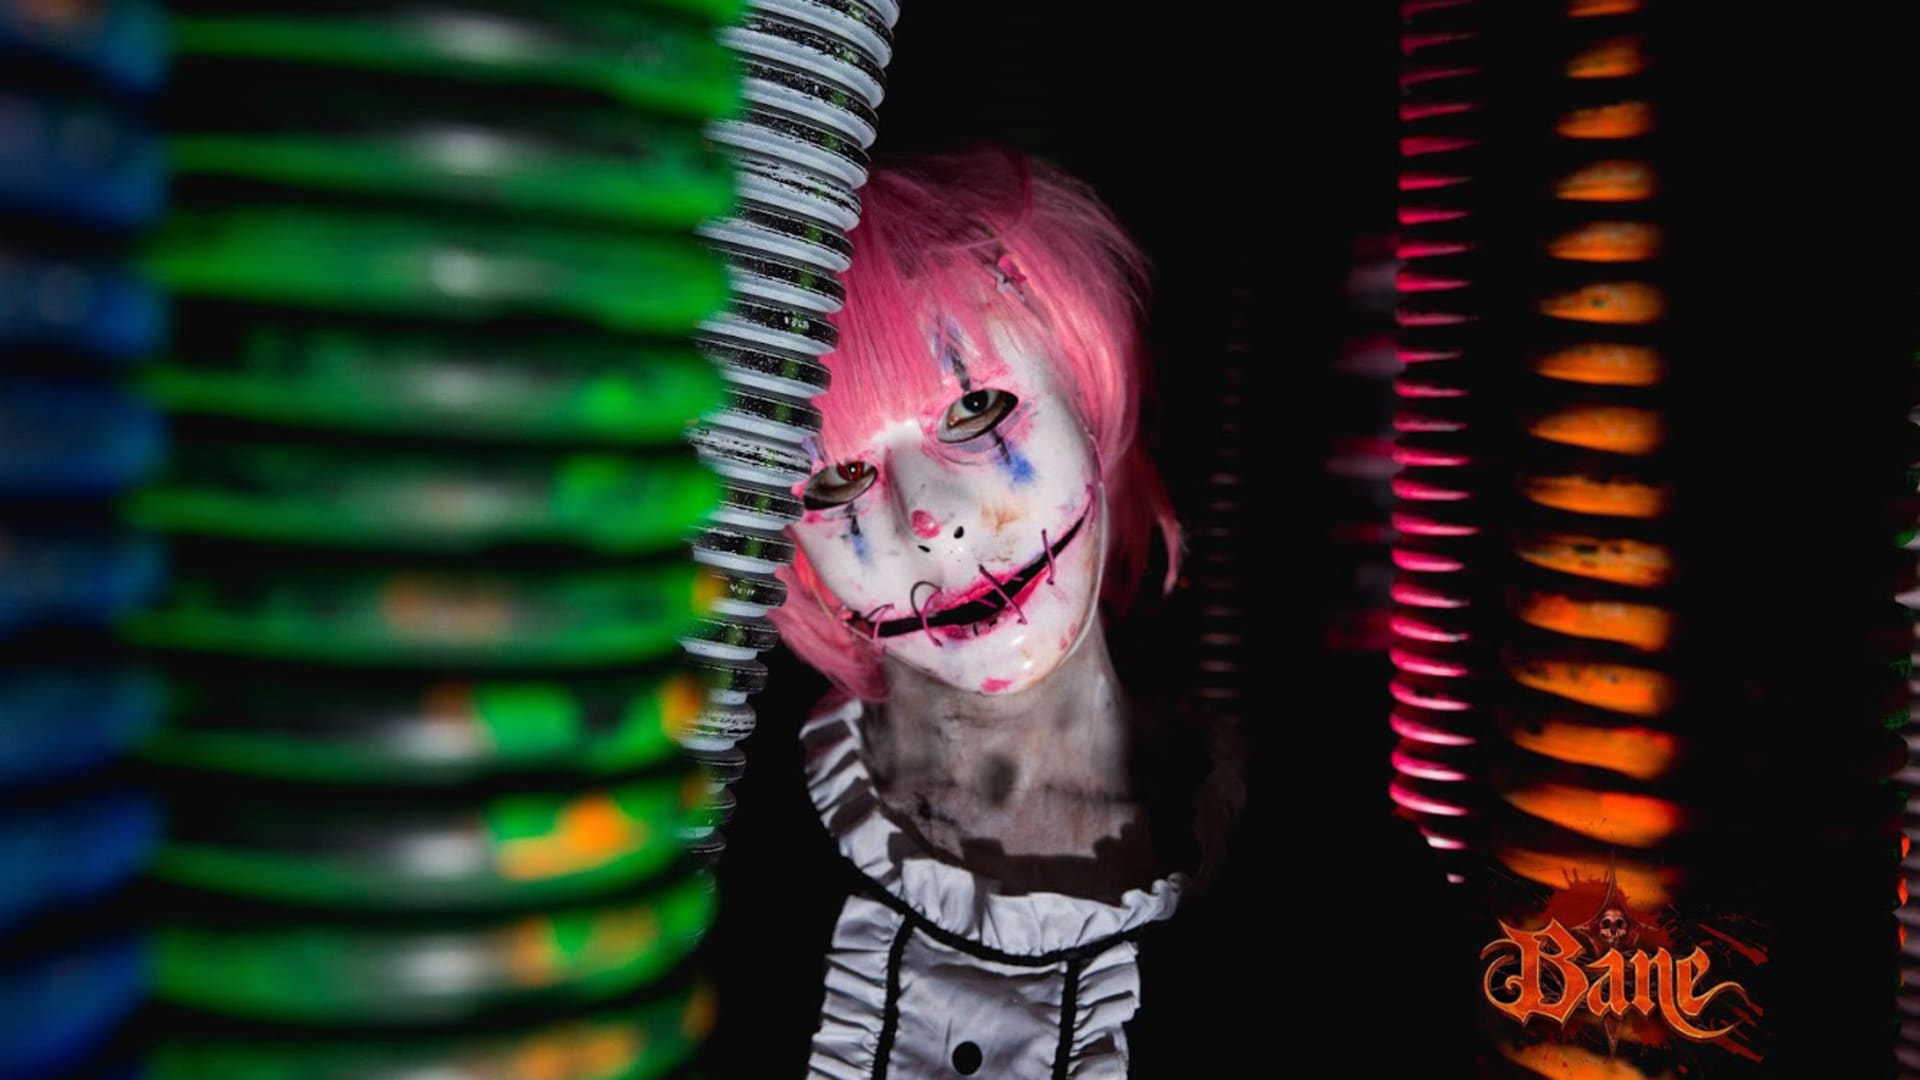 For This Haunted House Business, Halloween During Covid Is Extra Scary